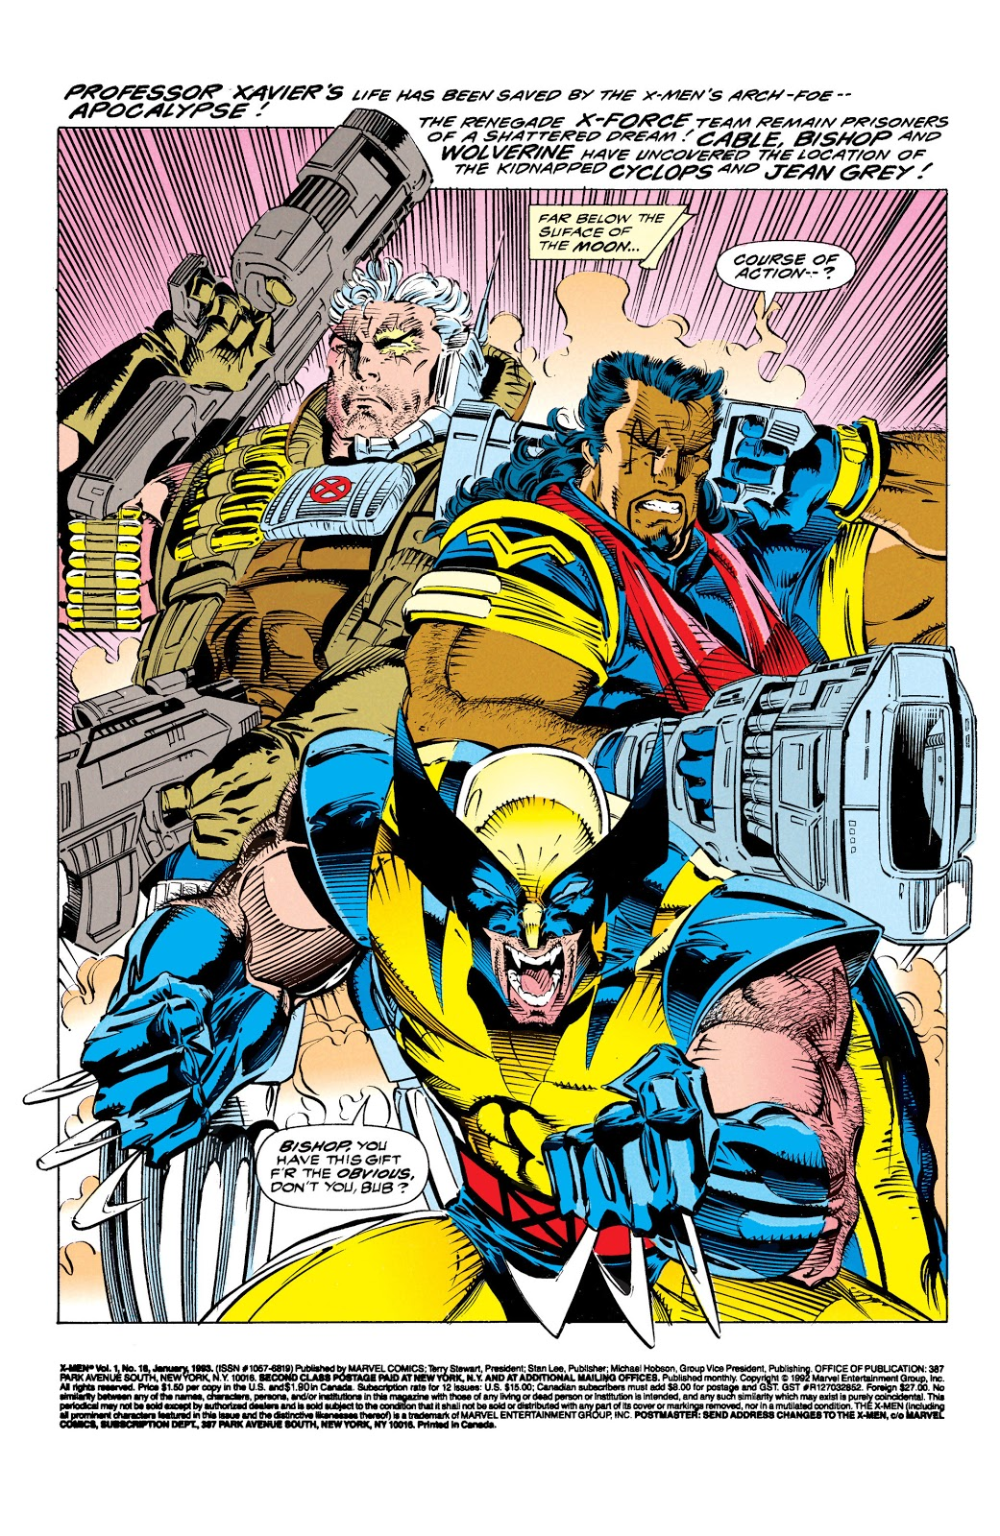 X Men 1991 Issue 16 Read X Men 1991 Issue 16 Comic Online In High Quality Wolverine Art Superhero Art Comic Book Artwork